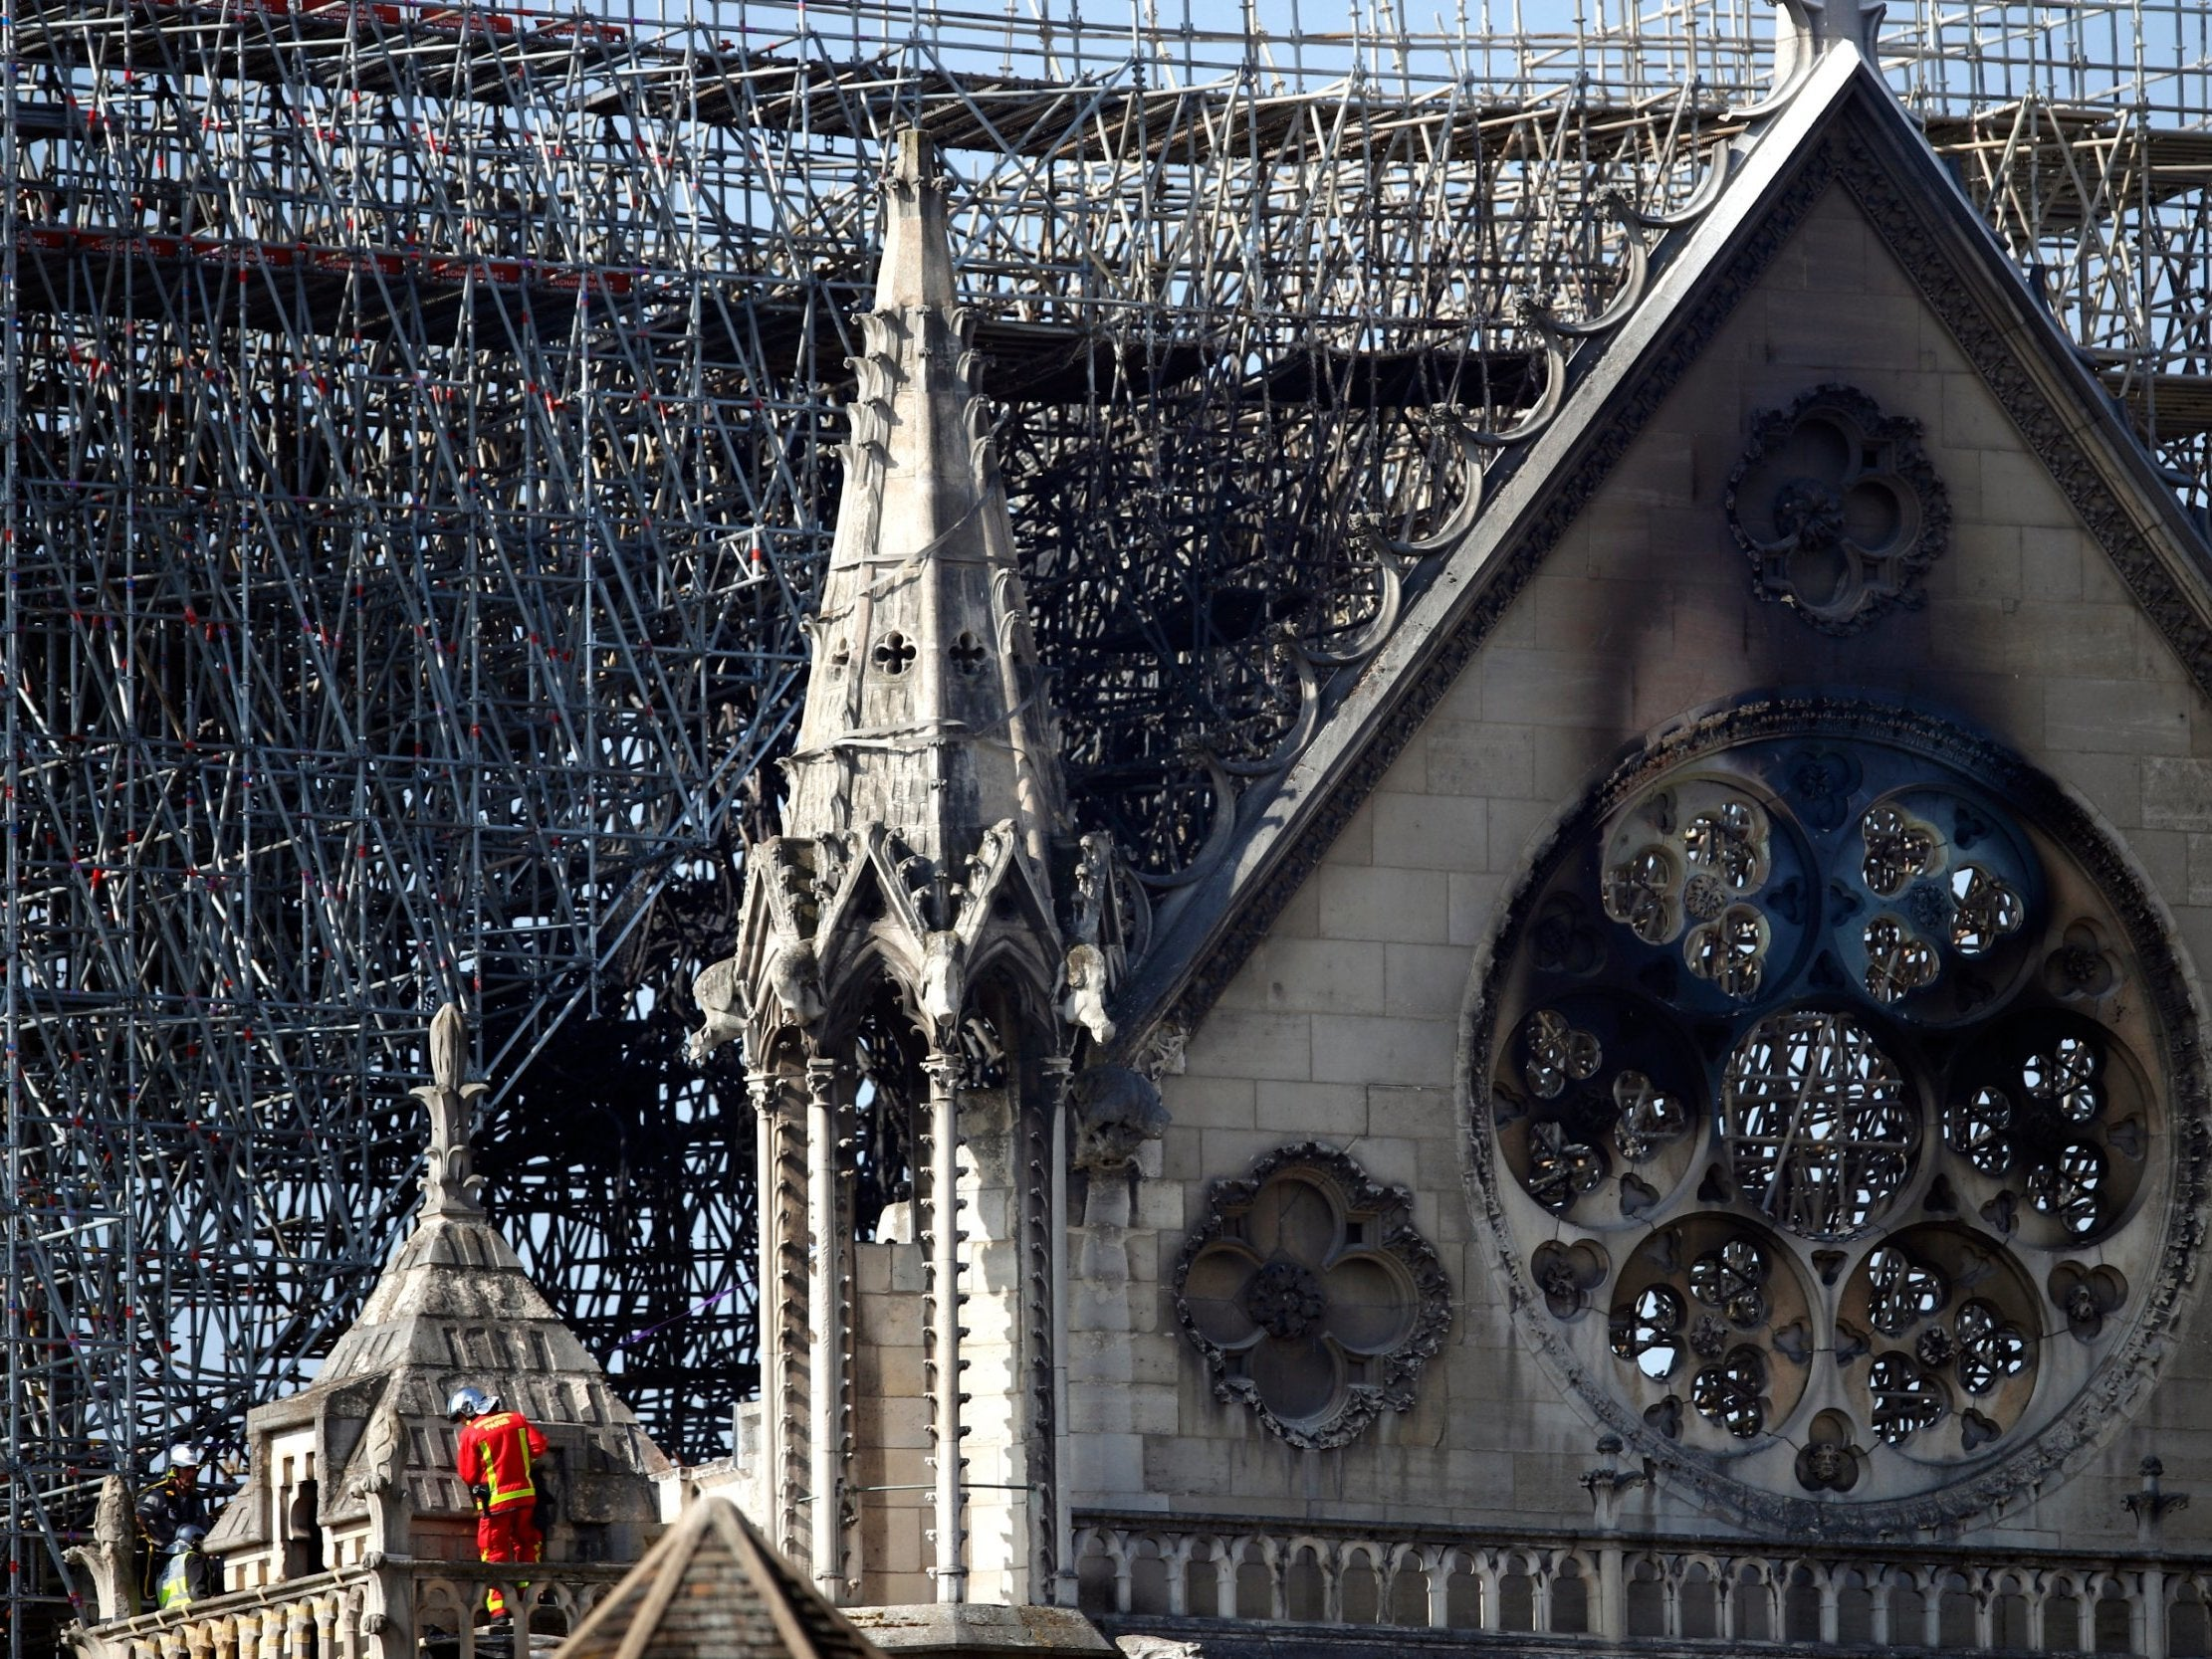 Notre Dame is heartbreaking – but so is France's looting of black history